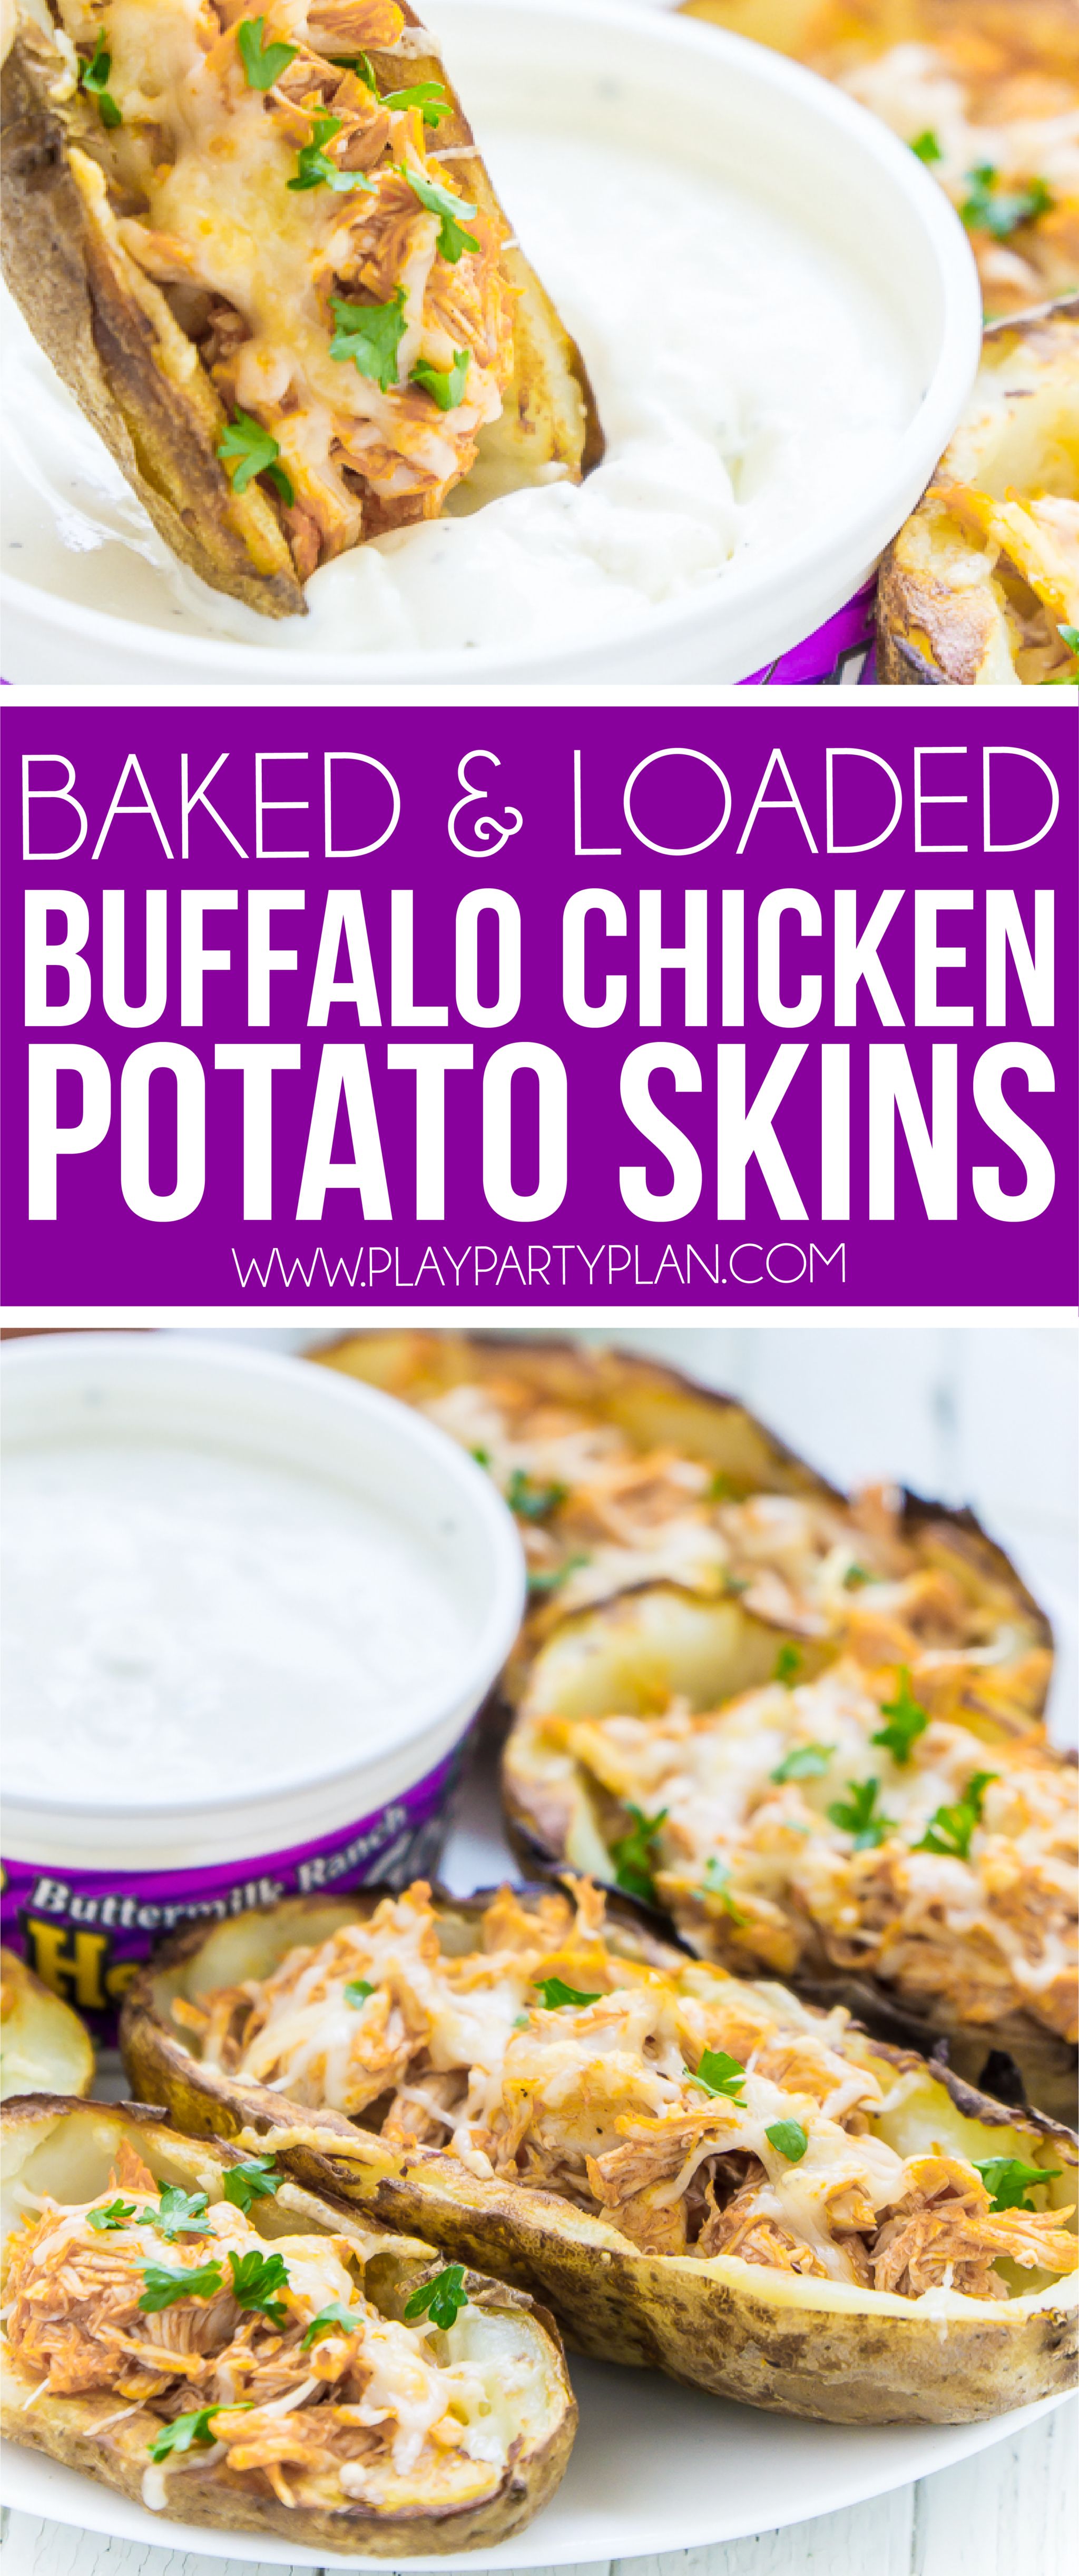 This buffalo chicken stuffed potato skins recipe is one of the best appetizer recipes ever! It's easy, quick to make, and loaded with homemade buffalo chicken filling! And because they're baked and homemade, they're almost even healthy - compared to ones you'd get at a restaurant. A perfect football party food! via @playpartyplan